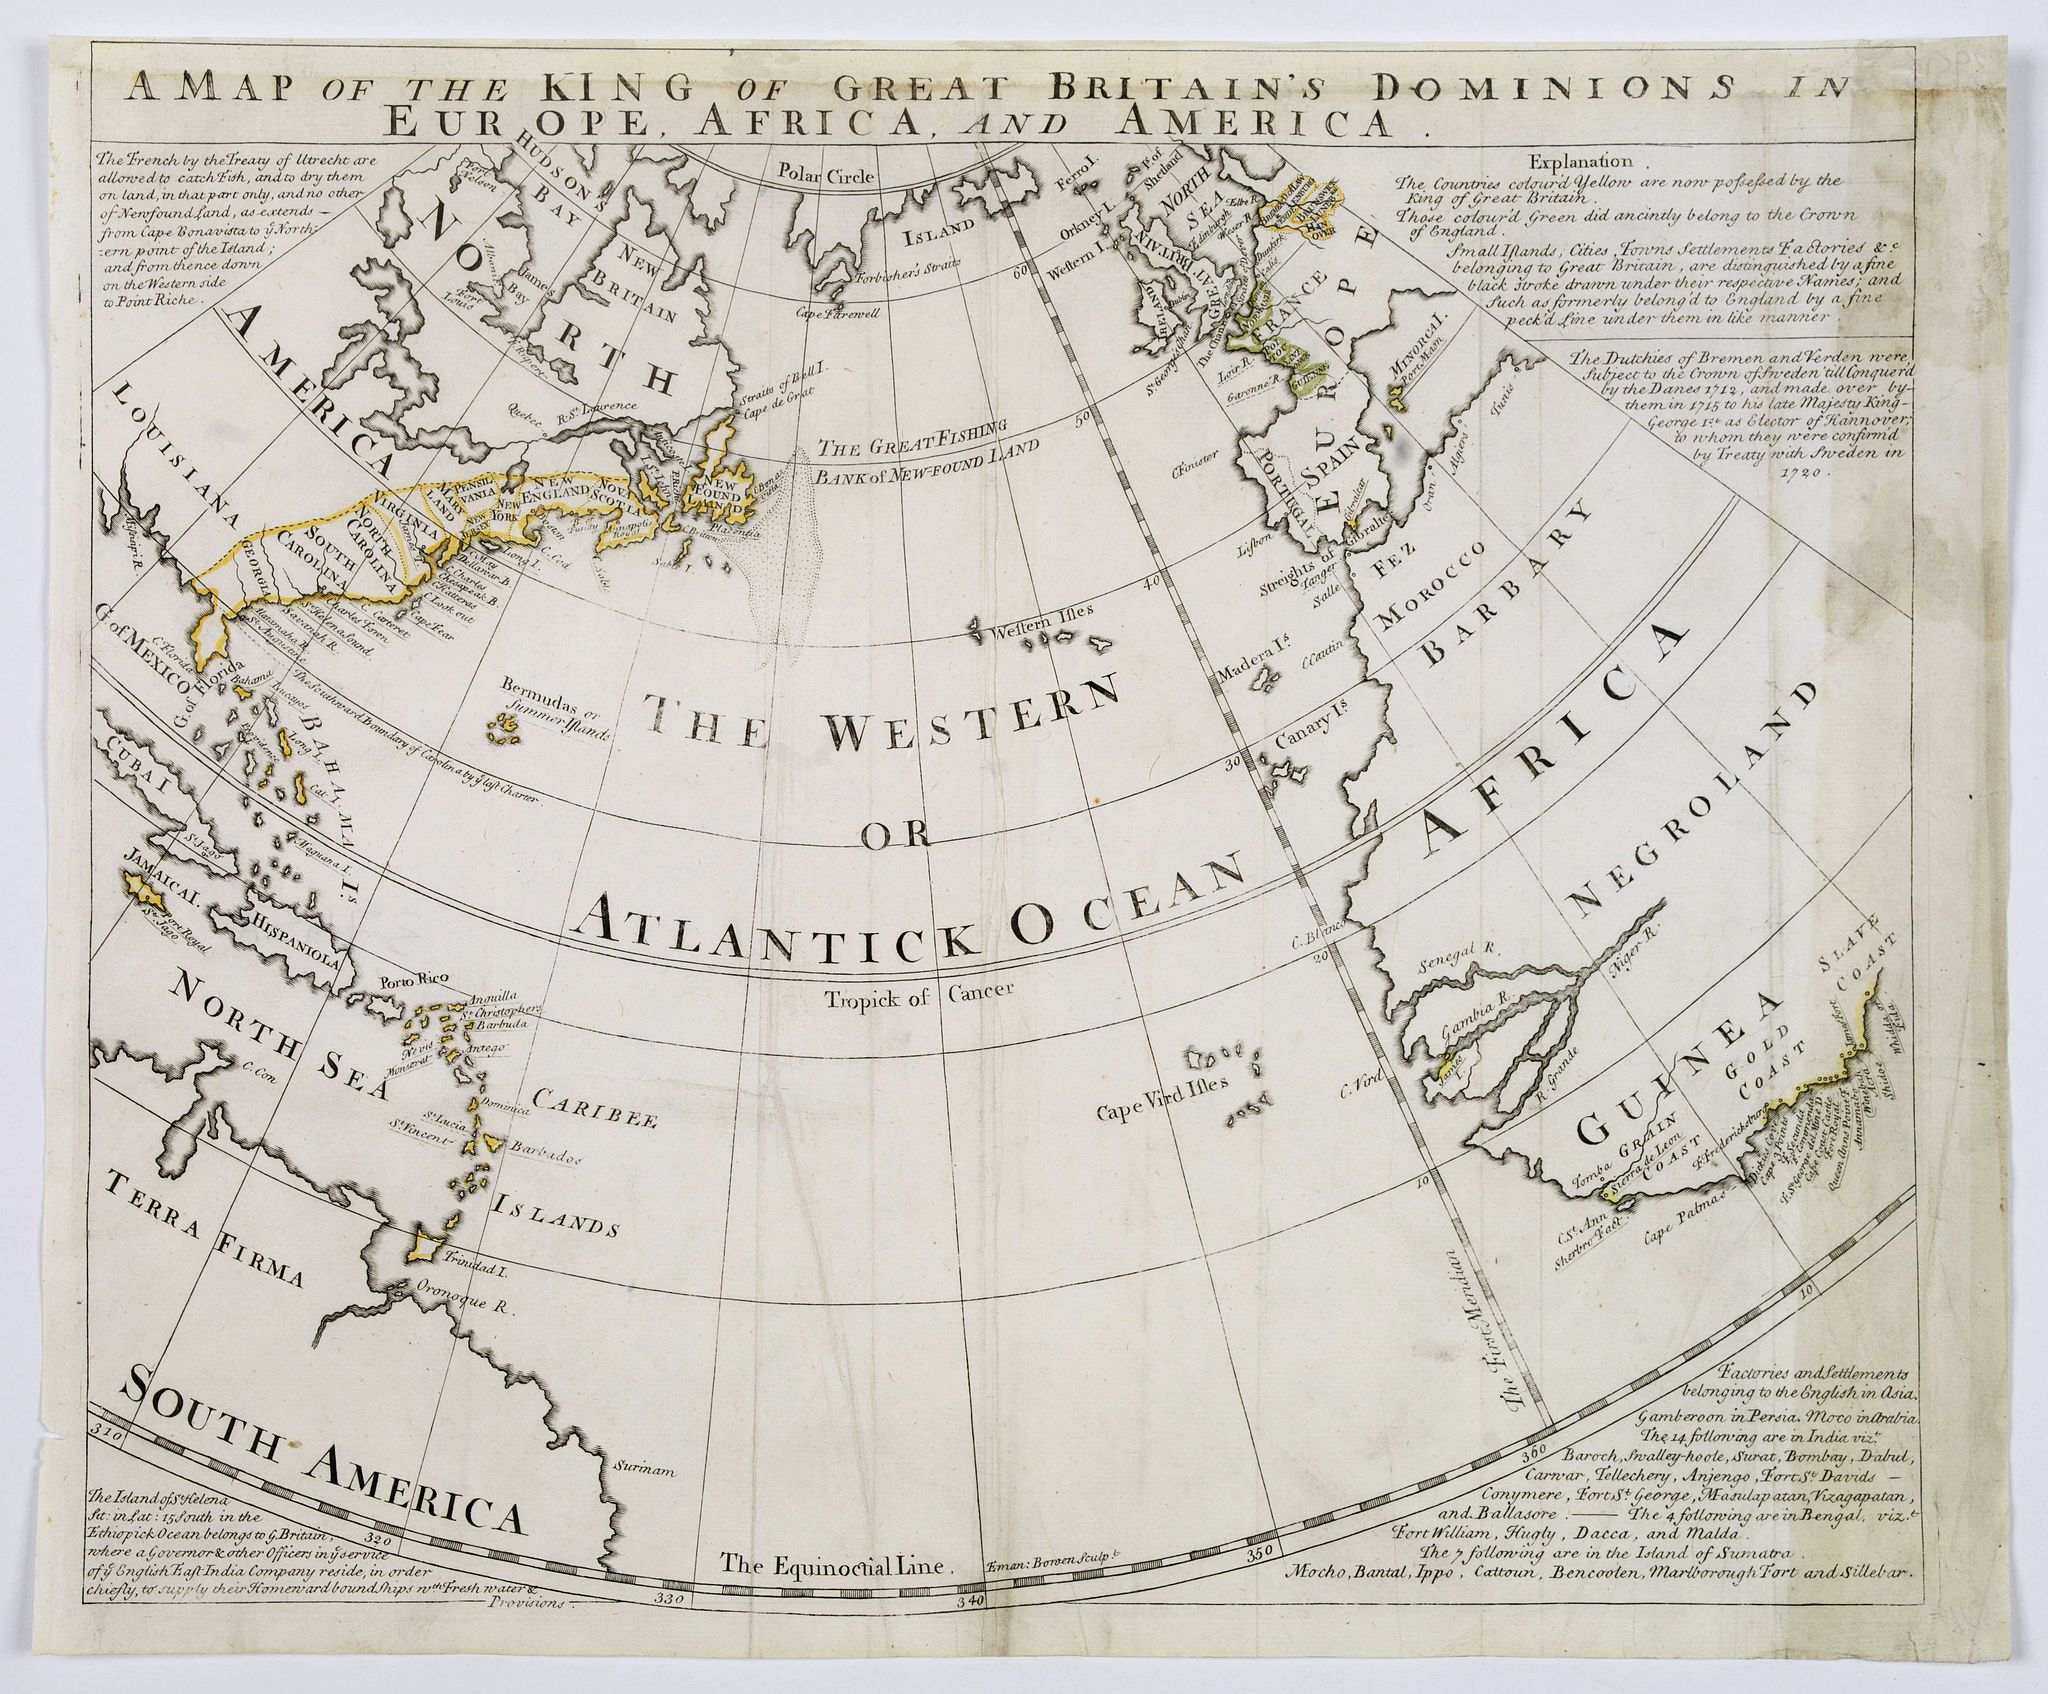 BOWEN, E.,  A Map of the King of Great Britain's Dominions in Europe, Africa, and America., antique map, old maps